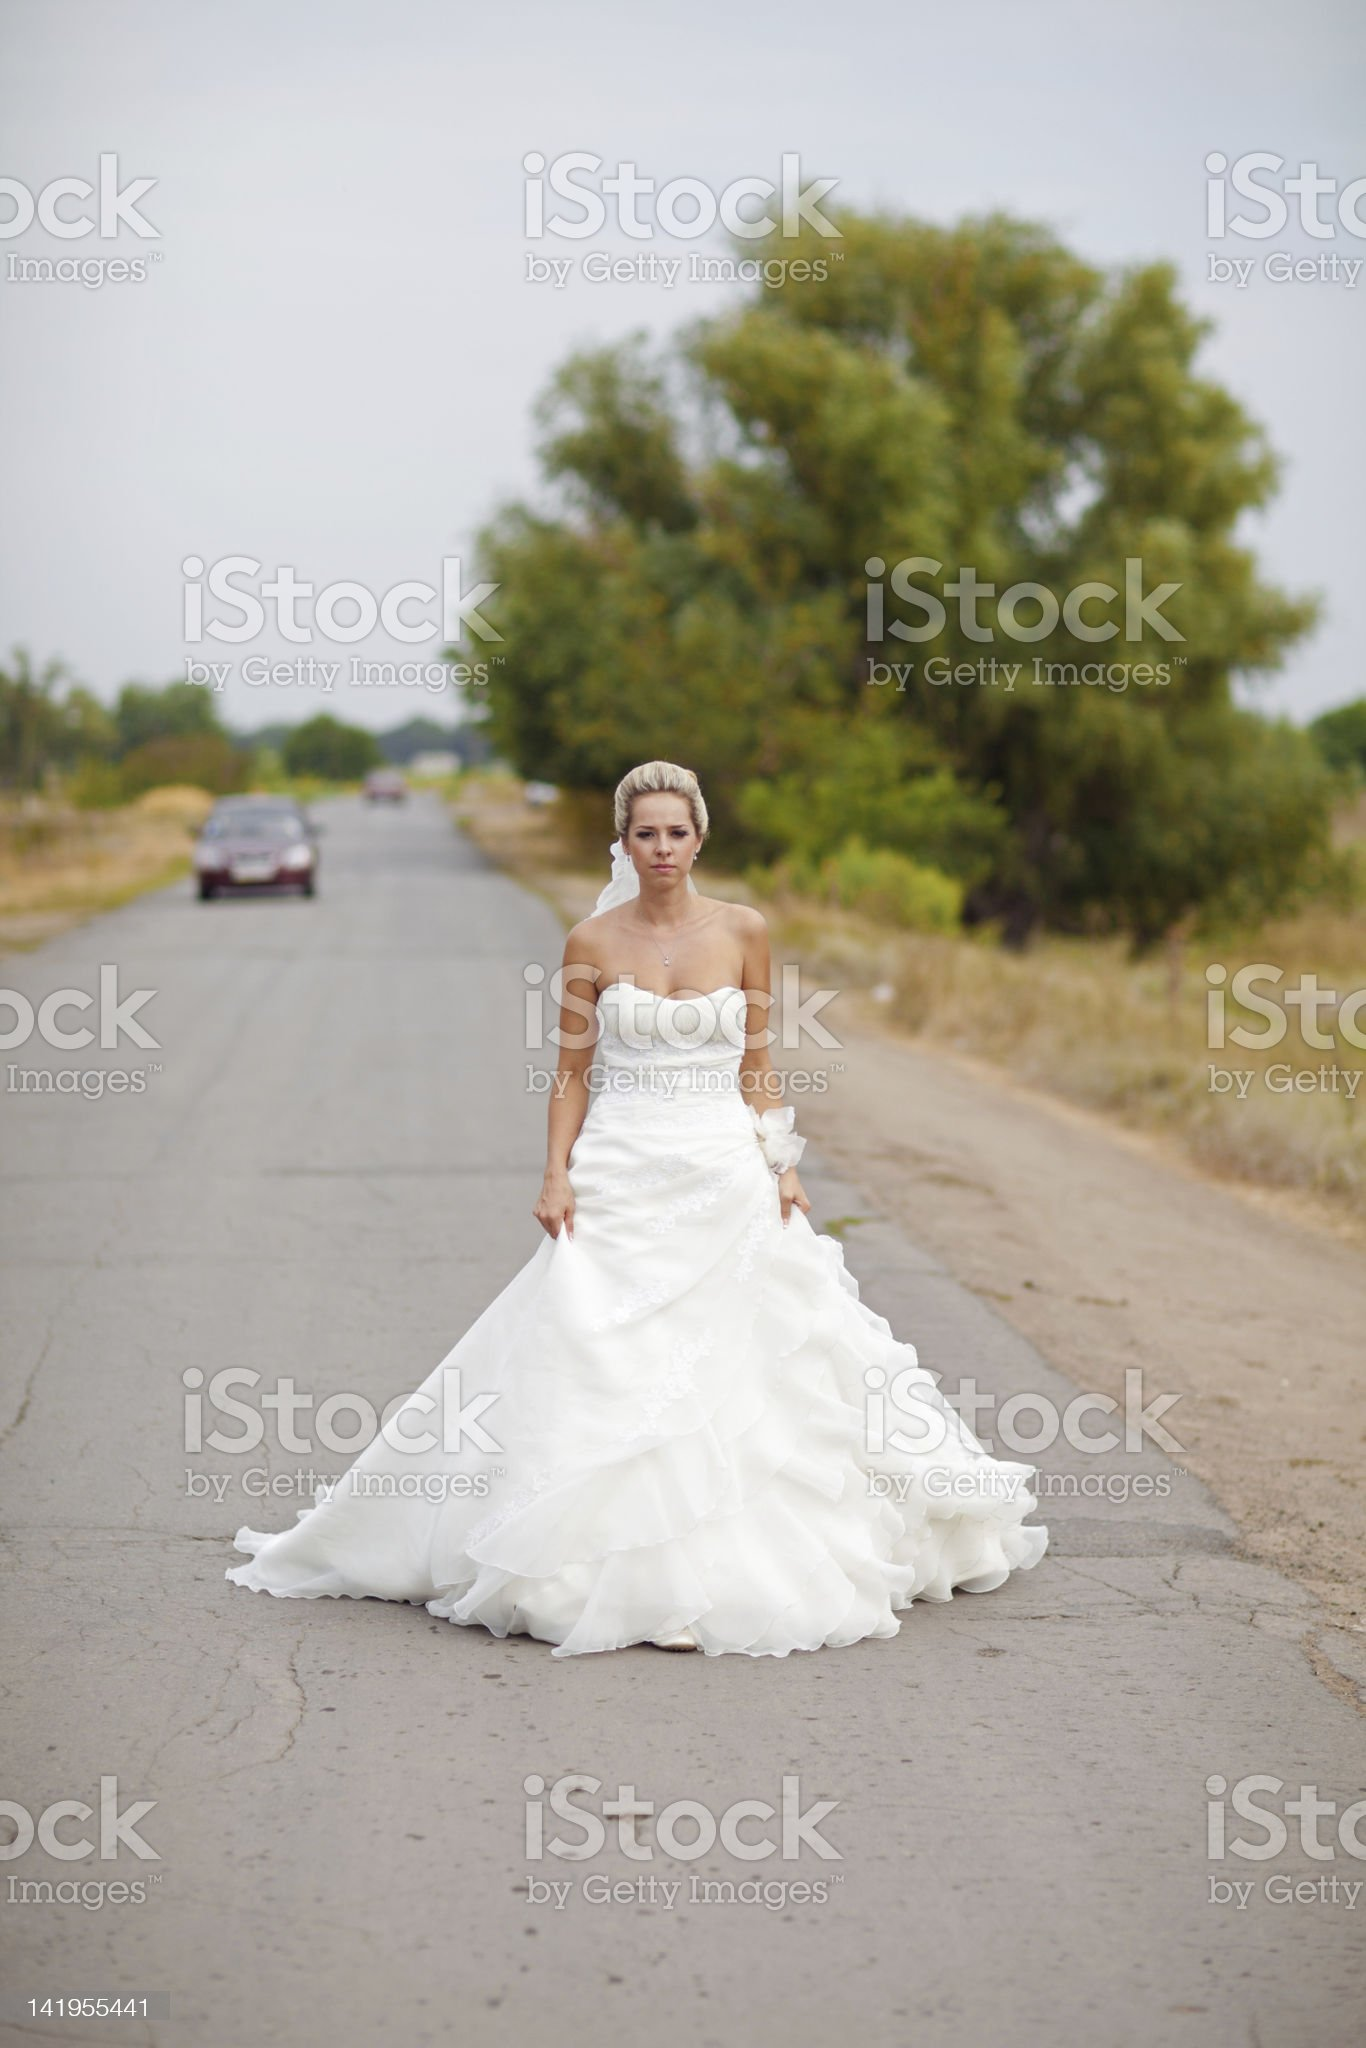 bride on the road royalty-free stock photo